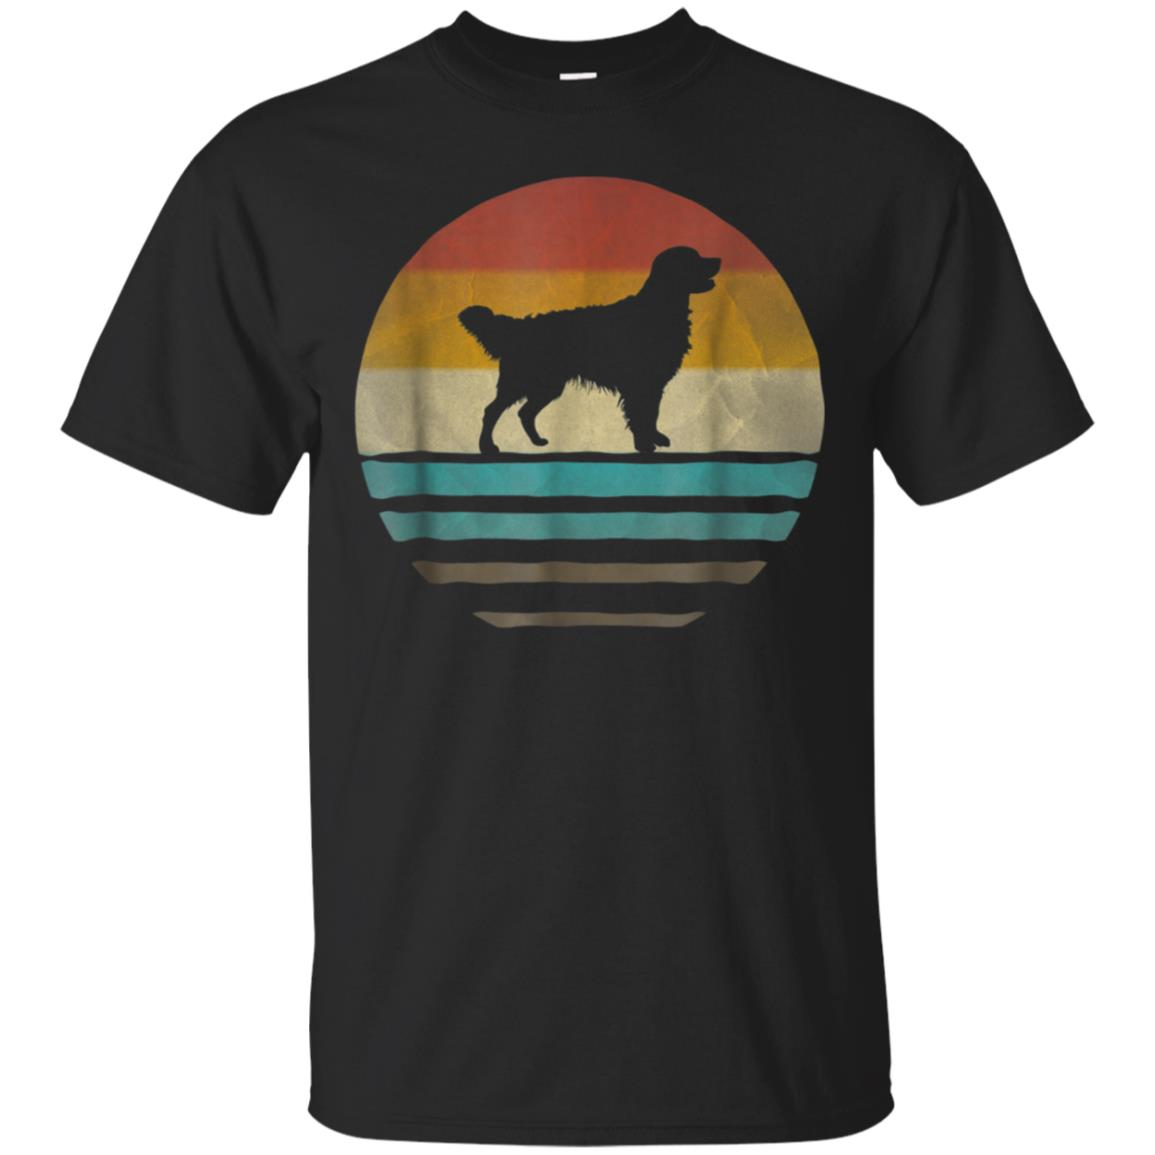 Golden Retriever Dog Shirt Retro Vintage 70s Silhouette Gift 99promocode